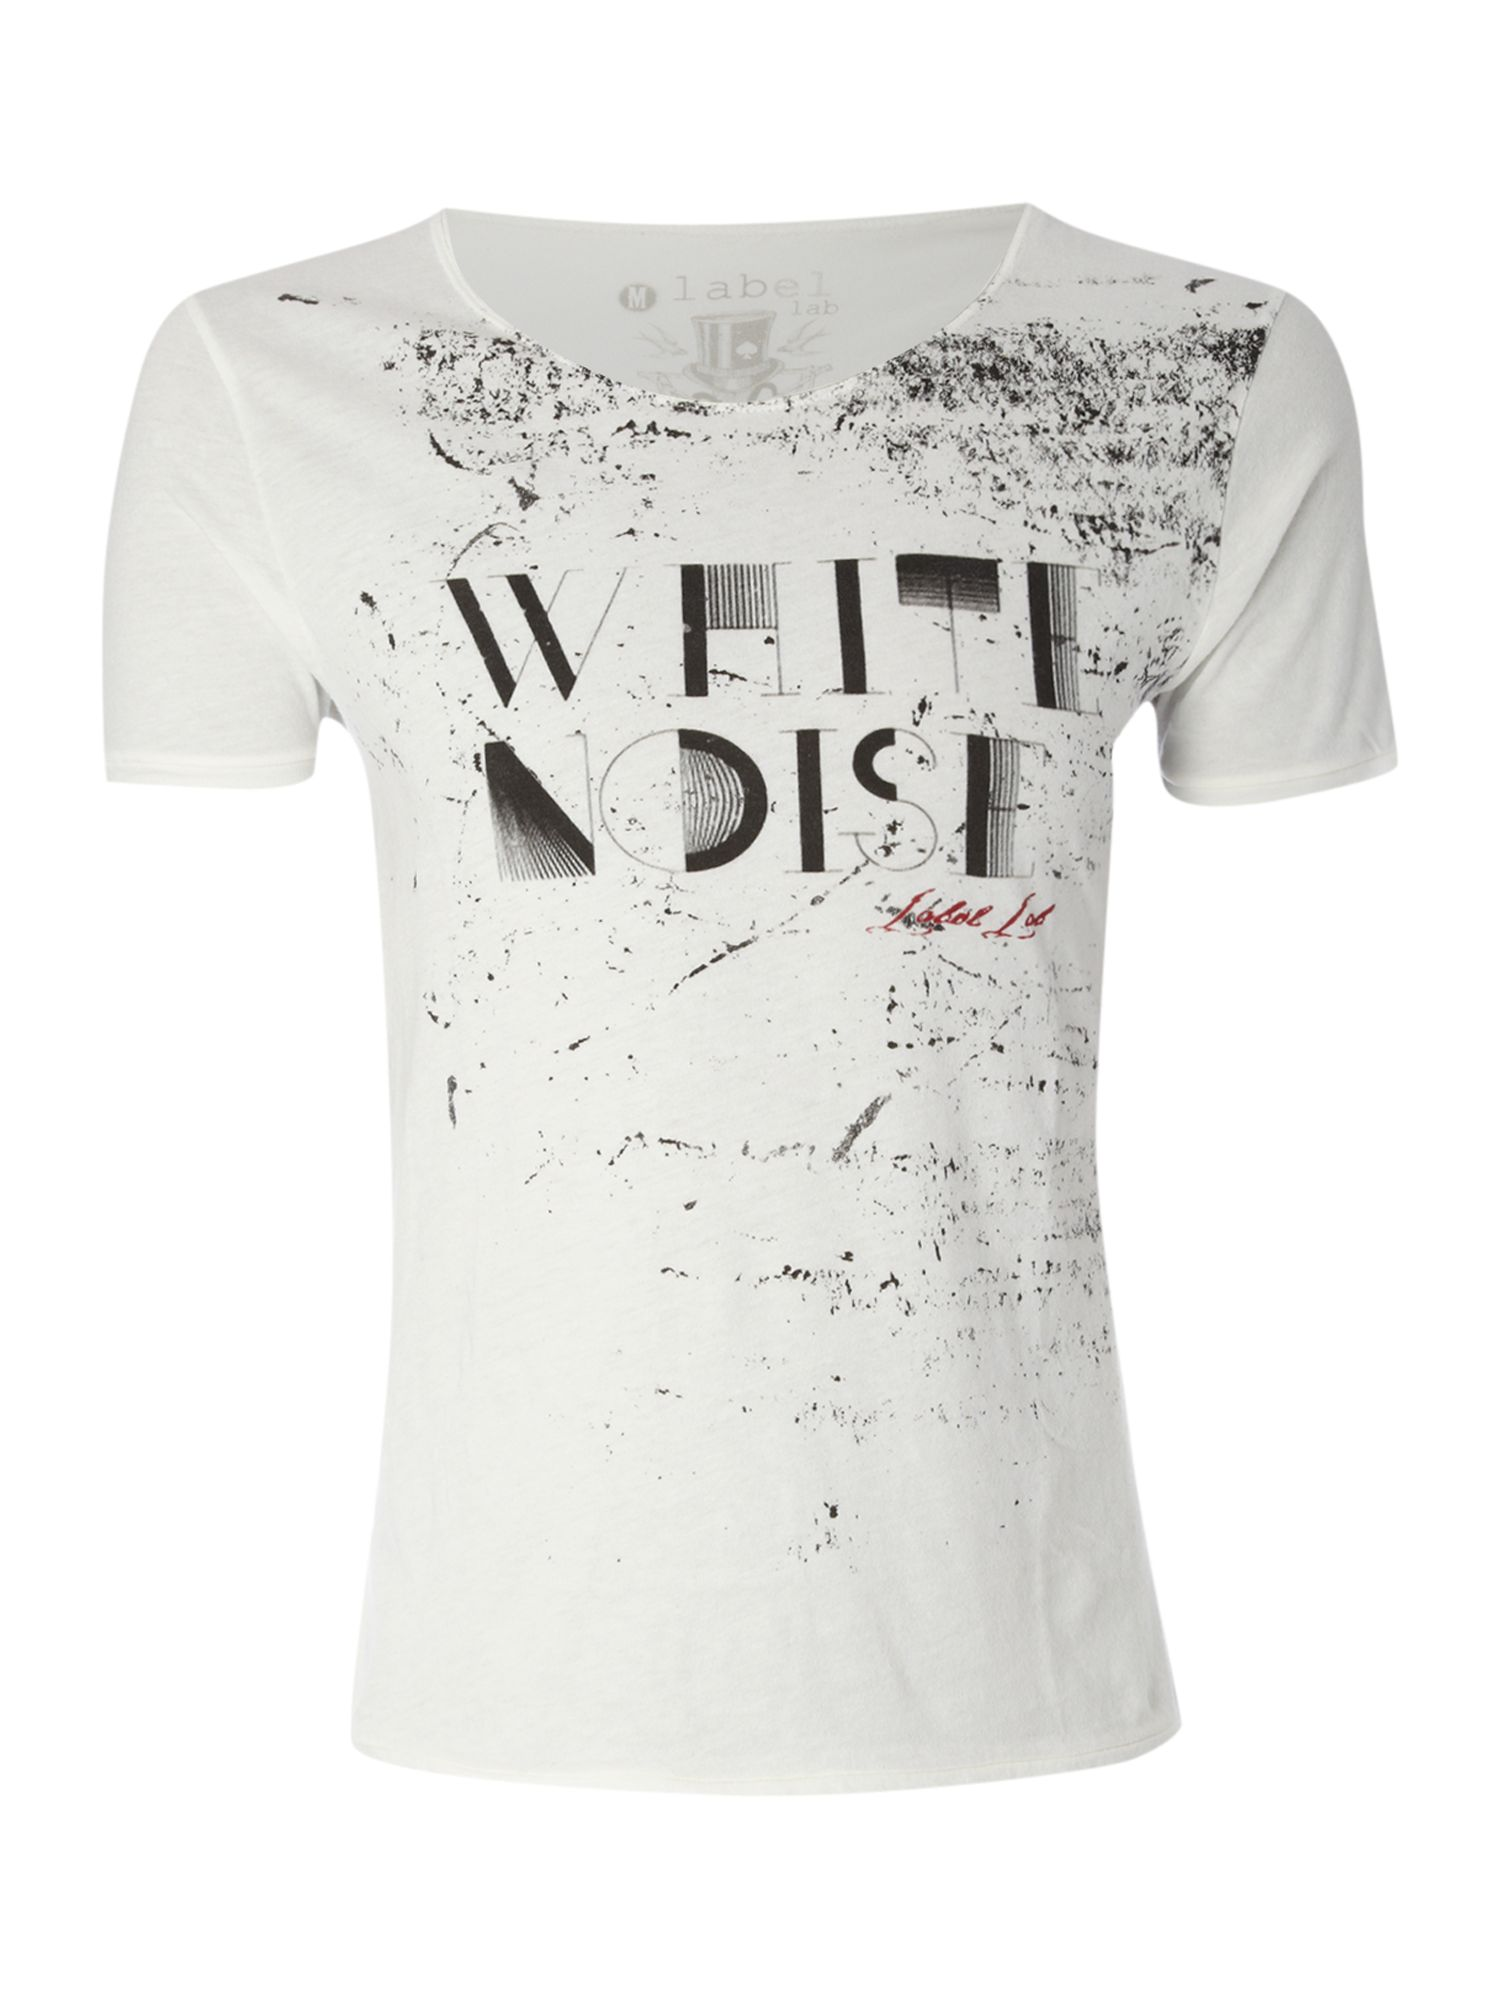 Label Lab Mens Label Lab White noise graphic T-shirt, product image